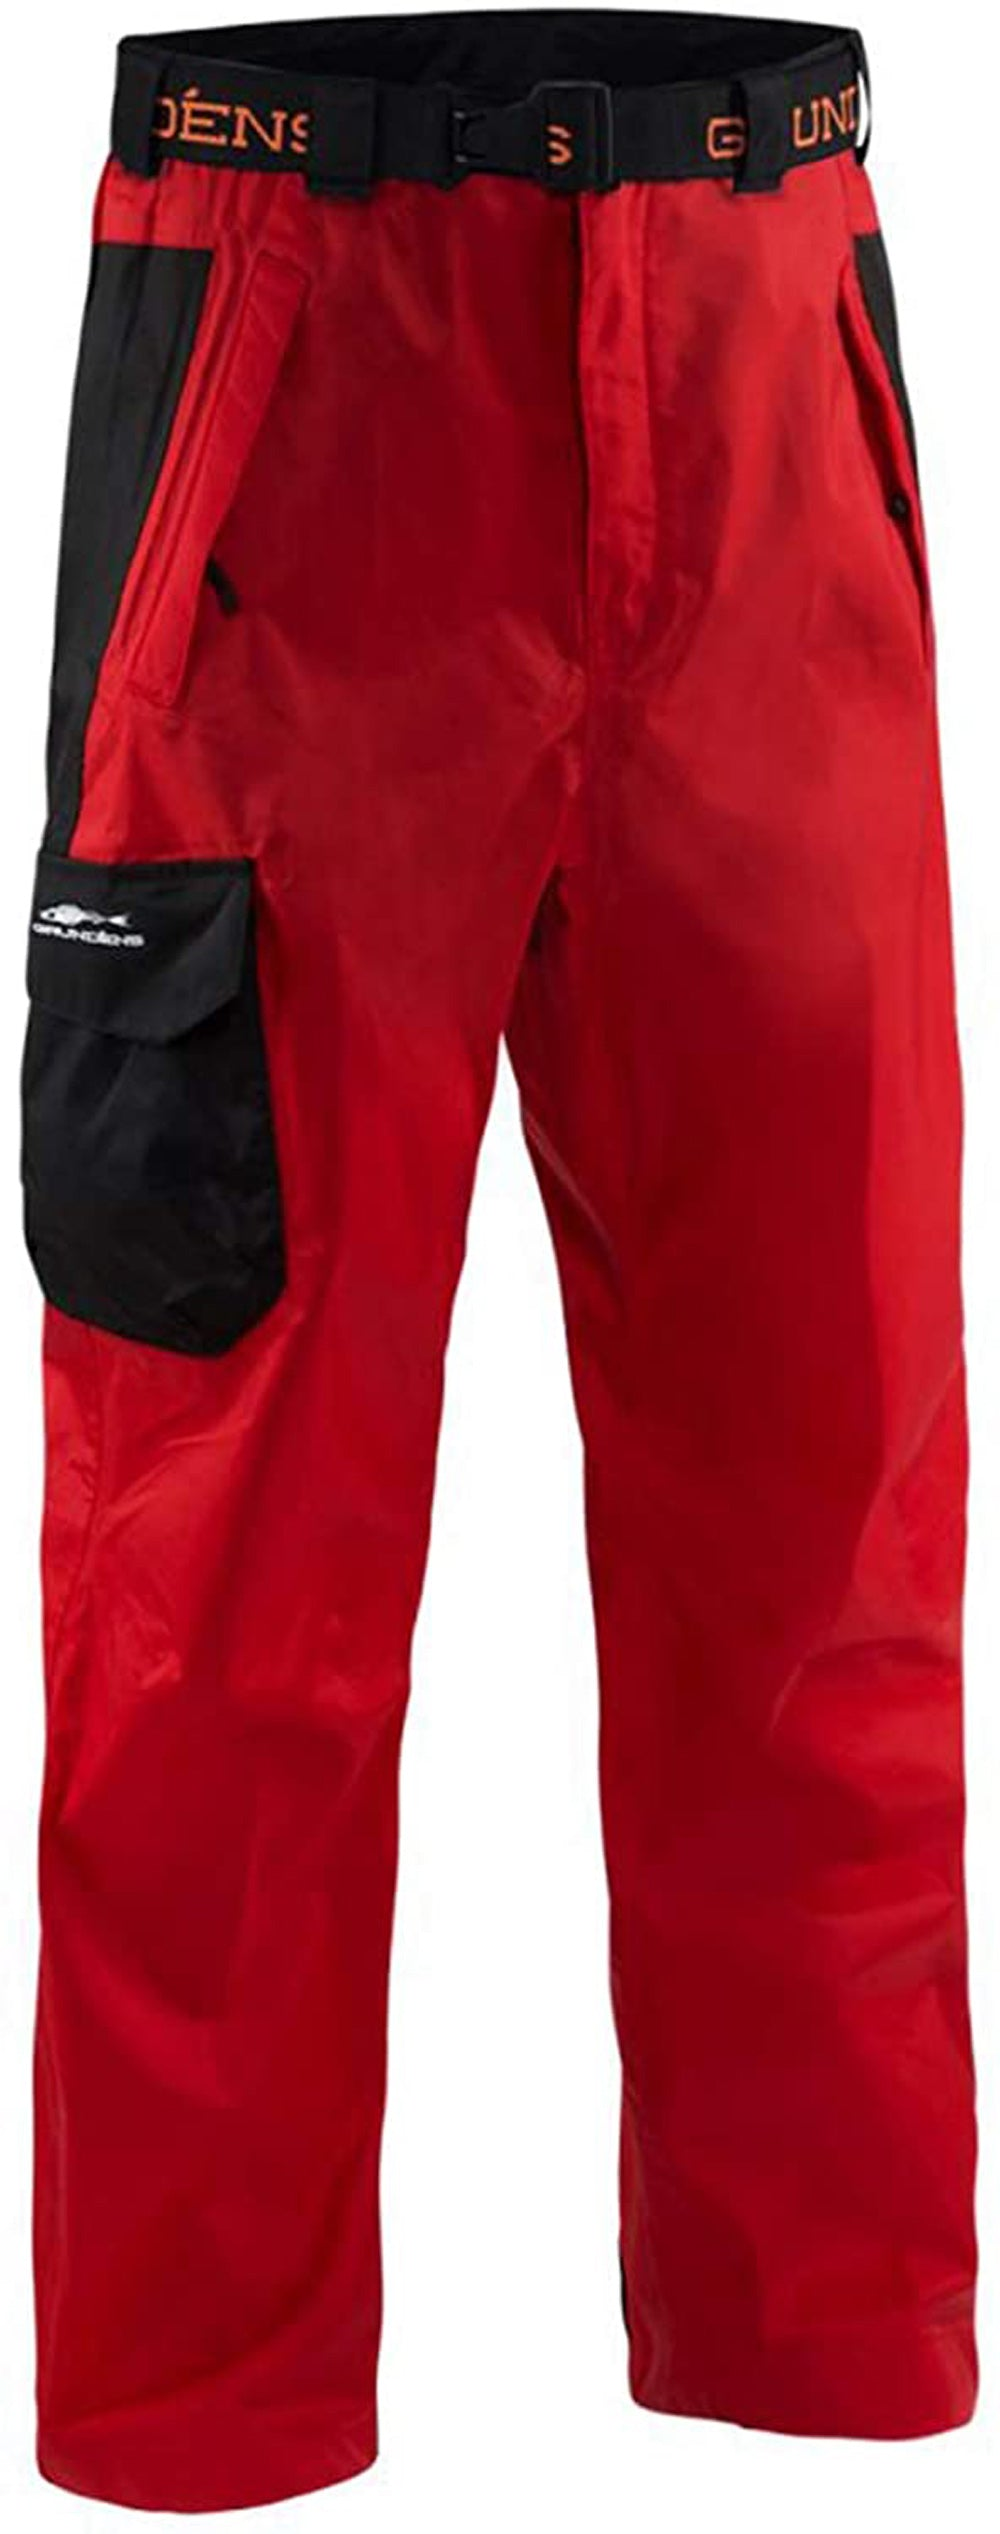 Weather Watch Pant in Red color from the front view